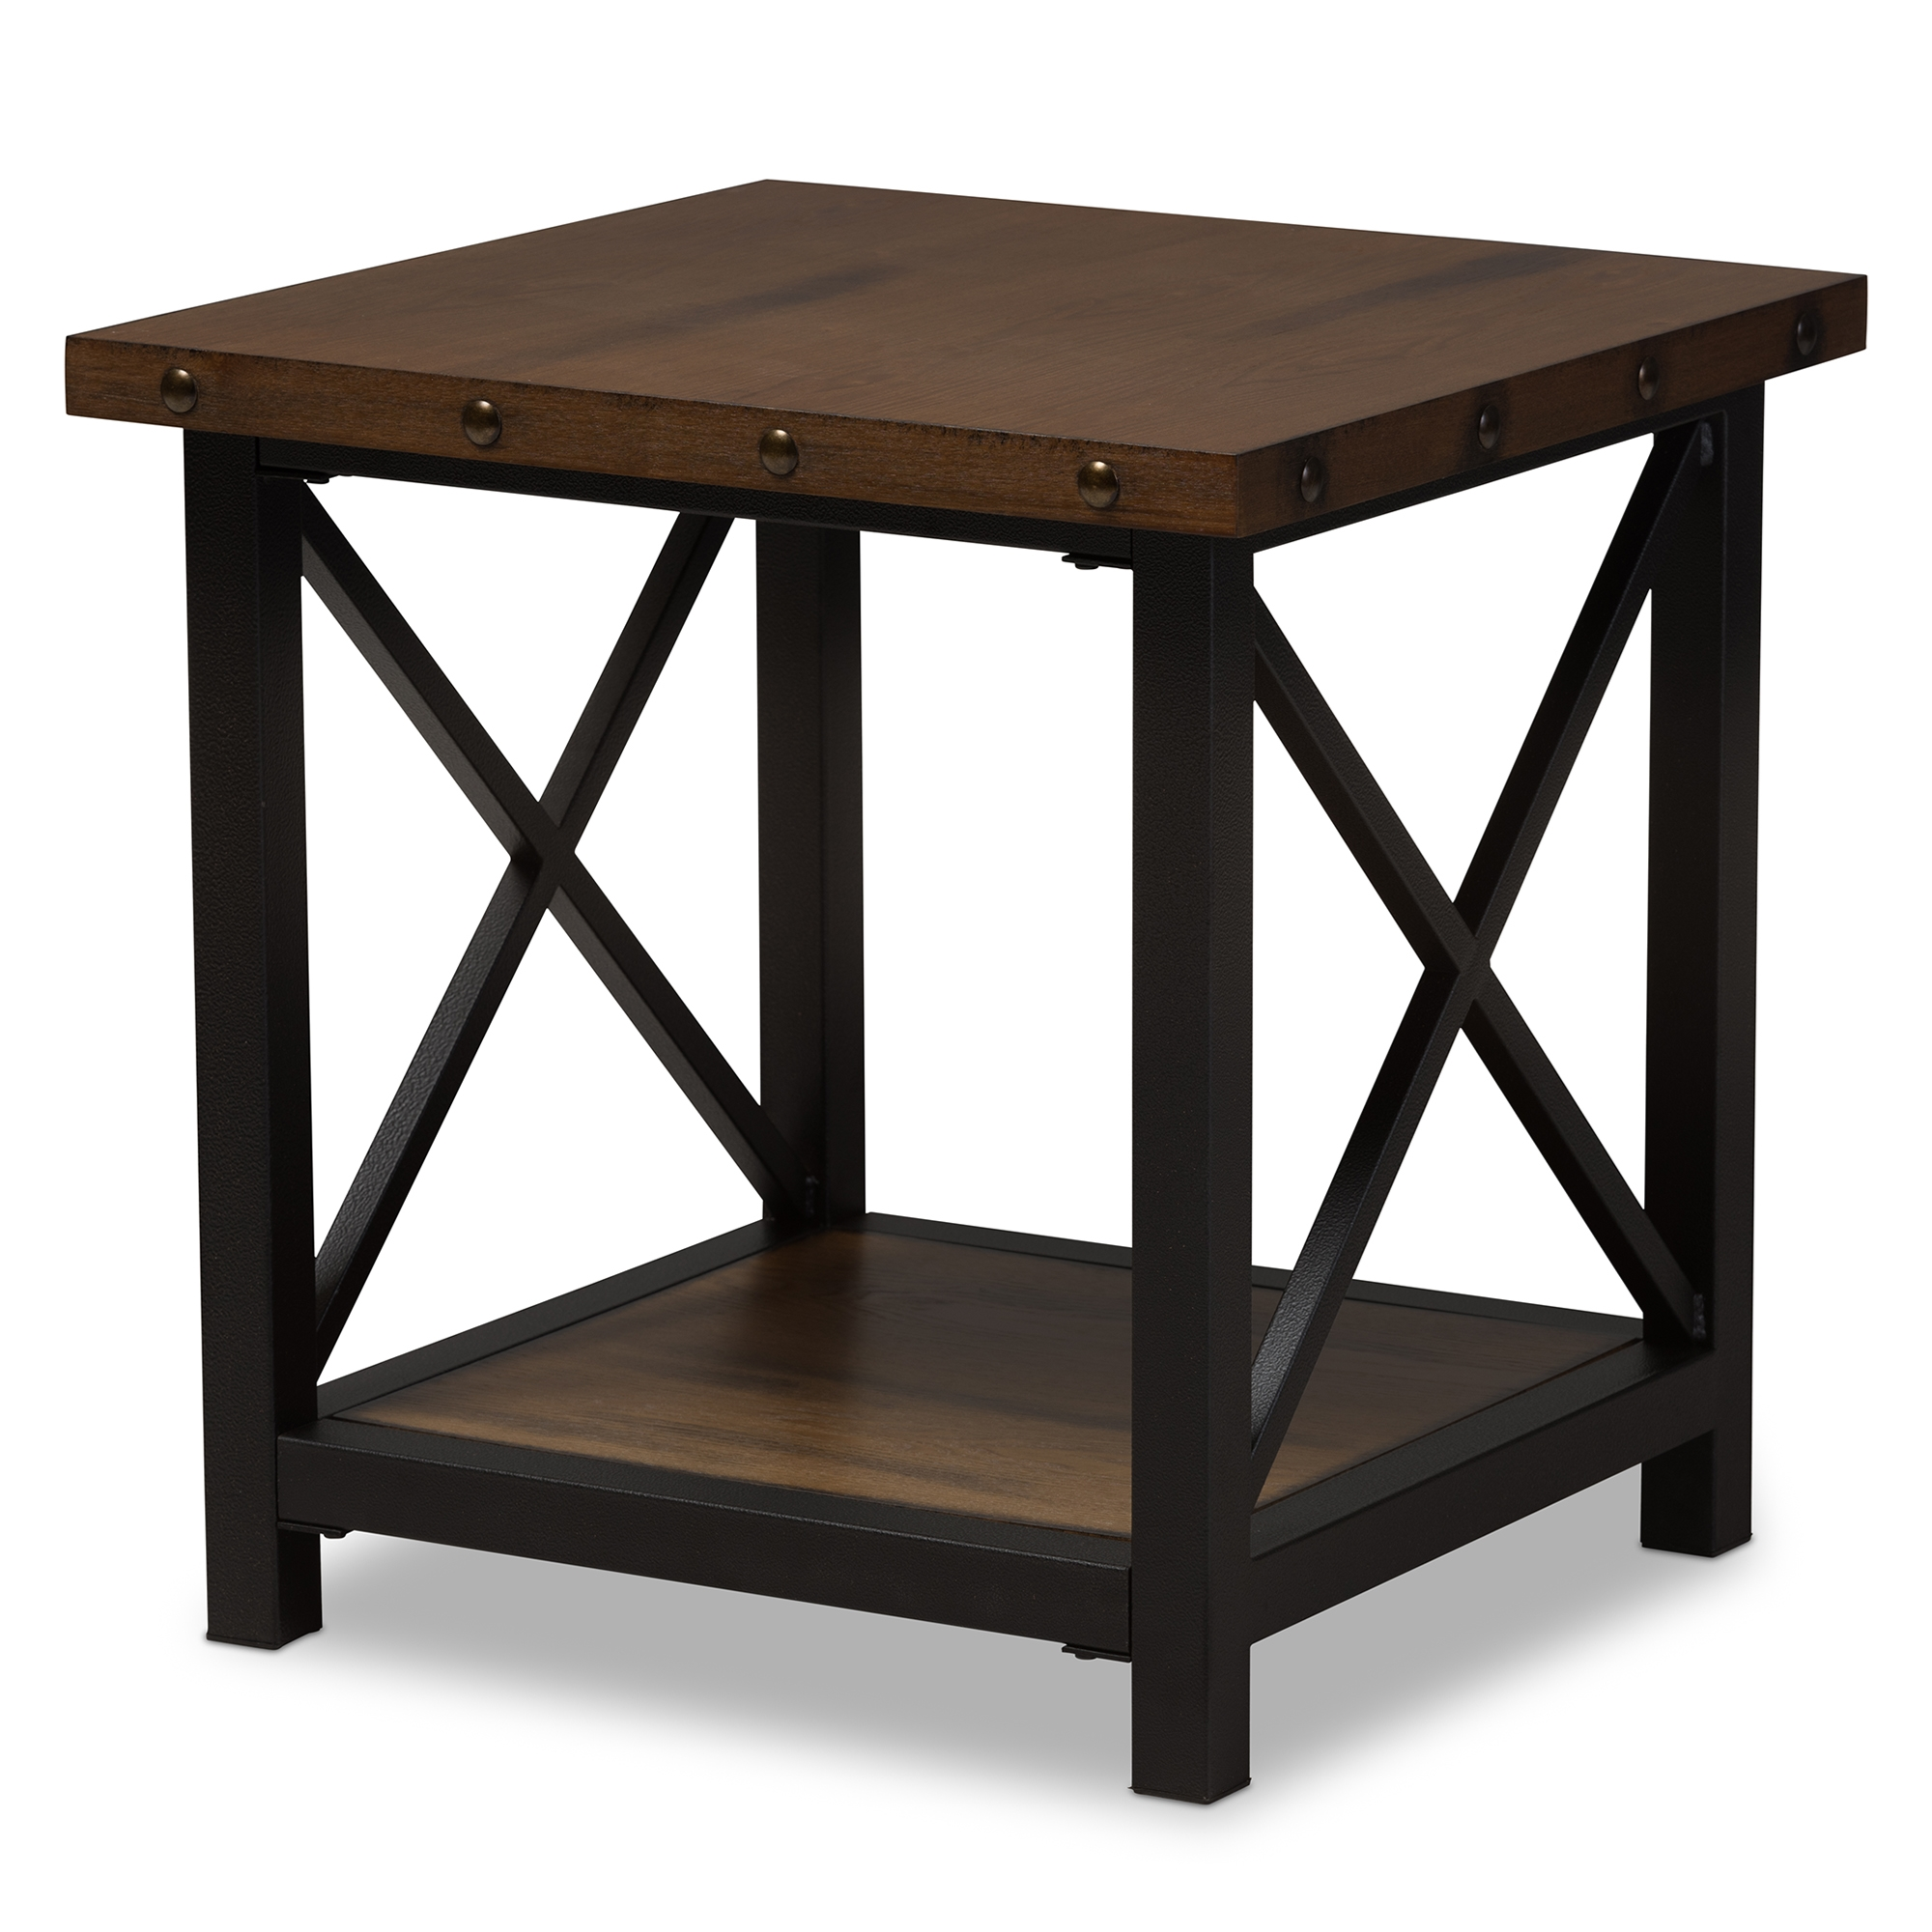 Black End Tables With Drawer Baxton Studio Herzen Rustic Industrial Style Antique Black Textured Finished Metal Distressed Wood Occasional End Table